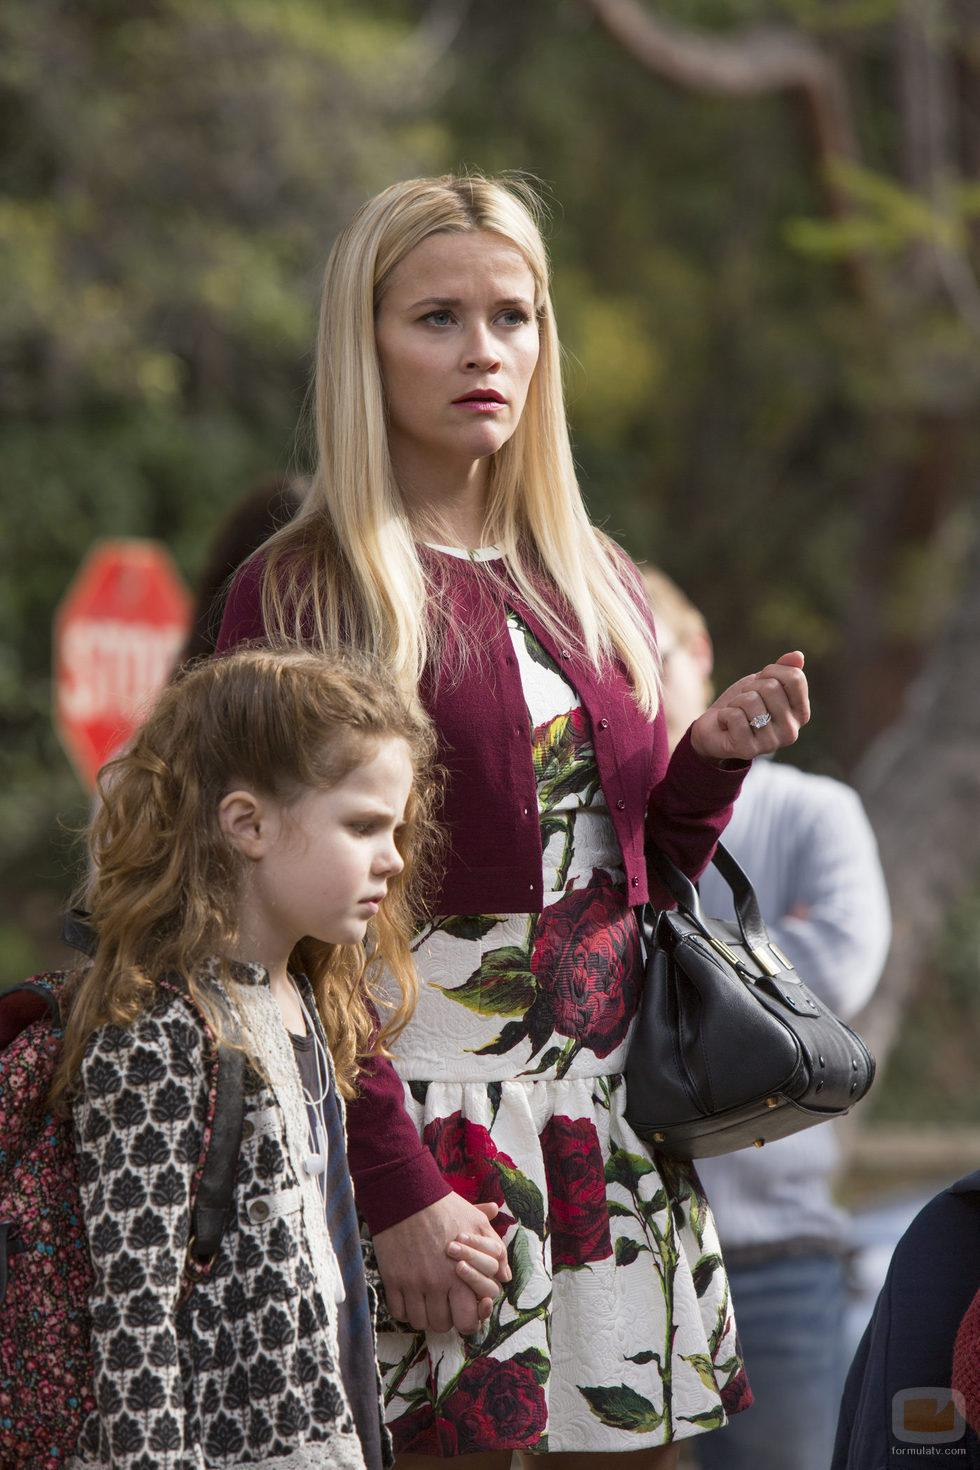 ¿Qué actriz se une al elenco de la 2ª temporada de Big Little Lies?